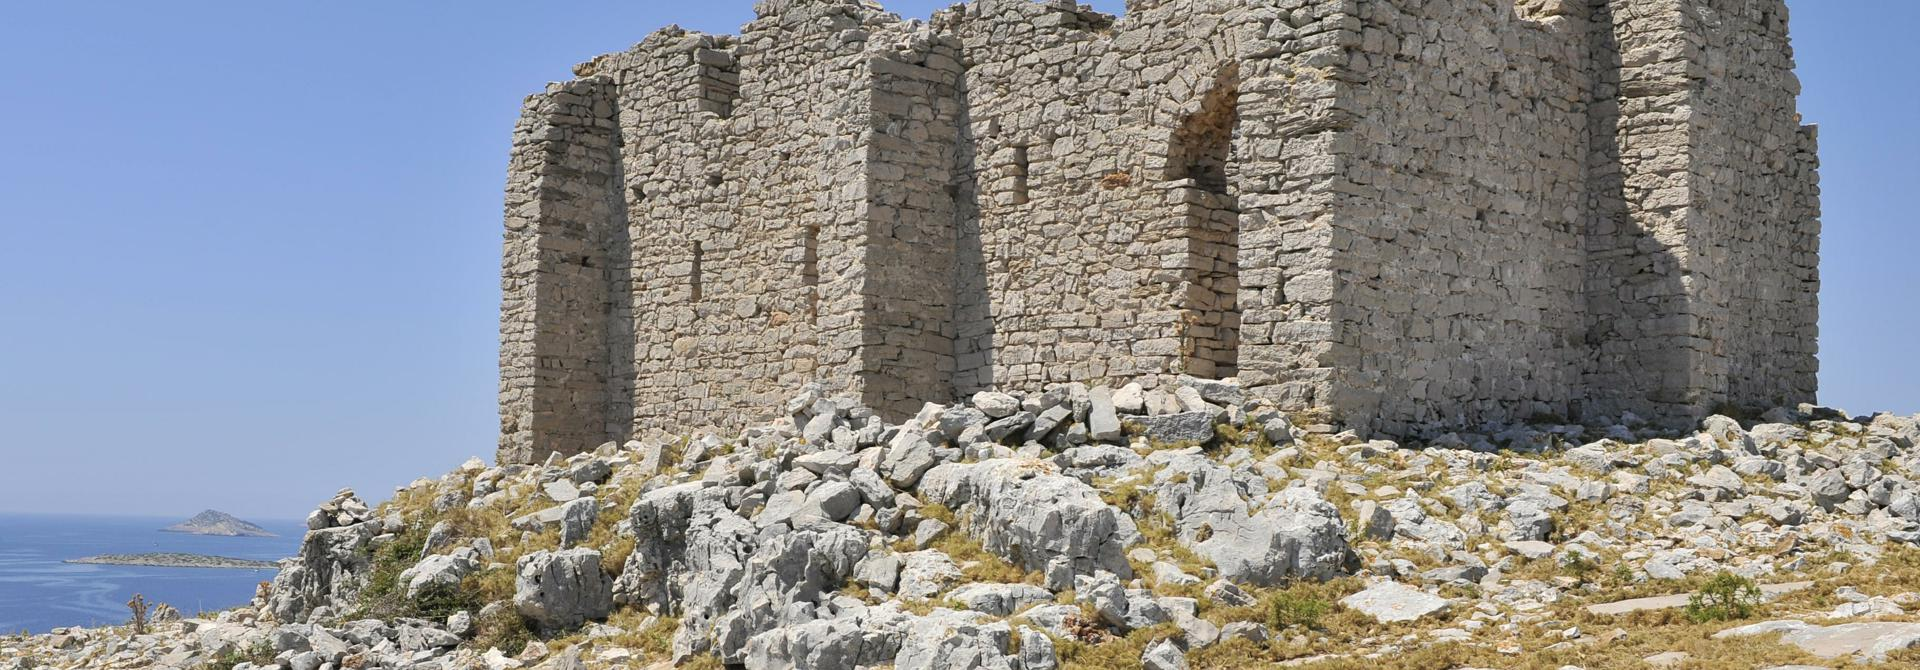 Tureta - Kornati-The small Byzantine fort in the Kornati Archipelago was probably a part of the fortified monastery, and was built as a component of the emperor Justinian's defensive system. (Photo: Damil Kalogjera)